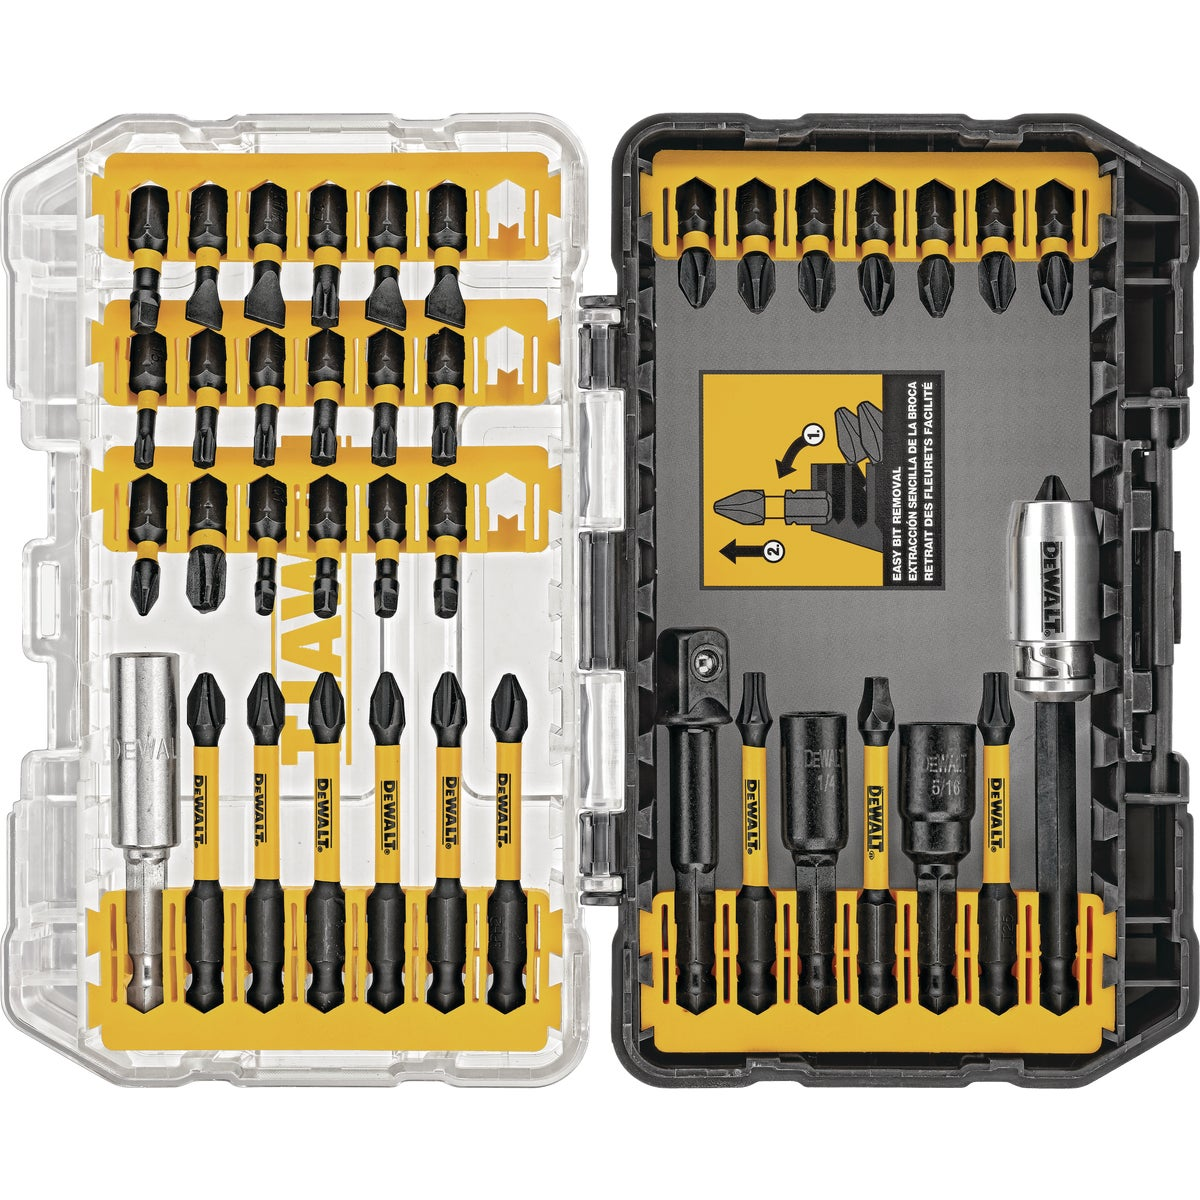 34PC IMPACT READY SET - DW2153 by DeWalt